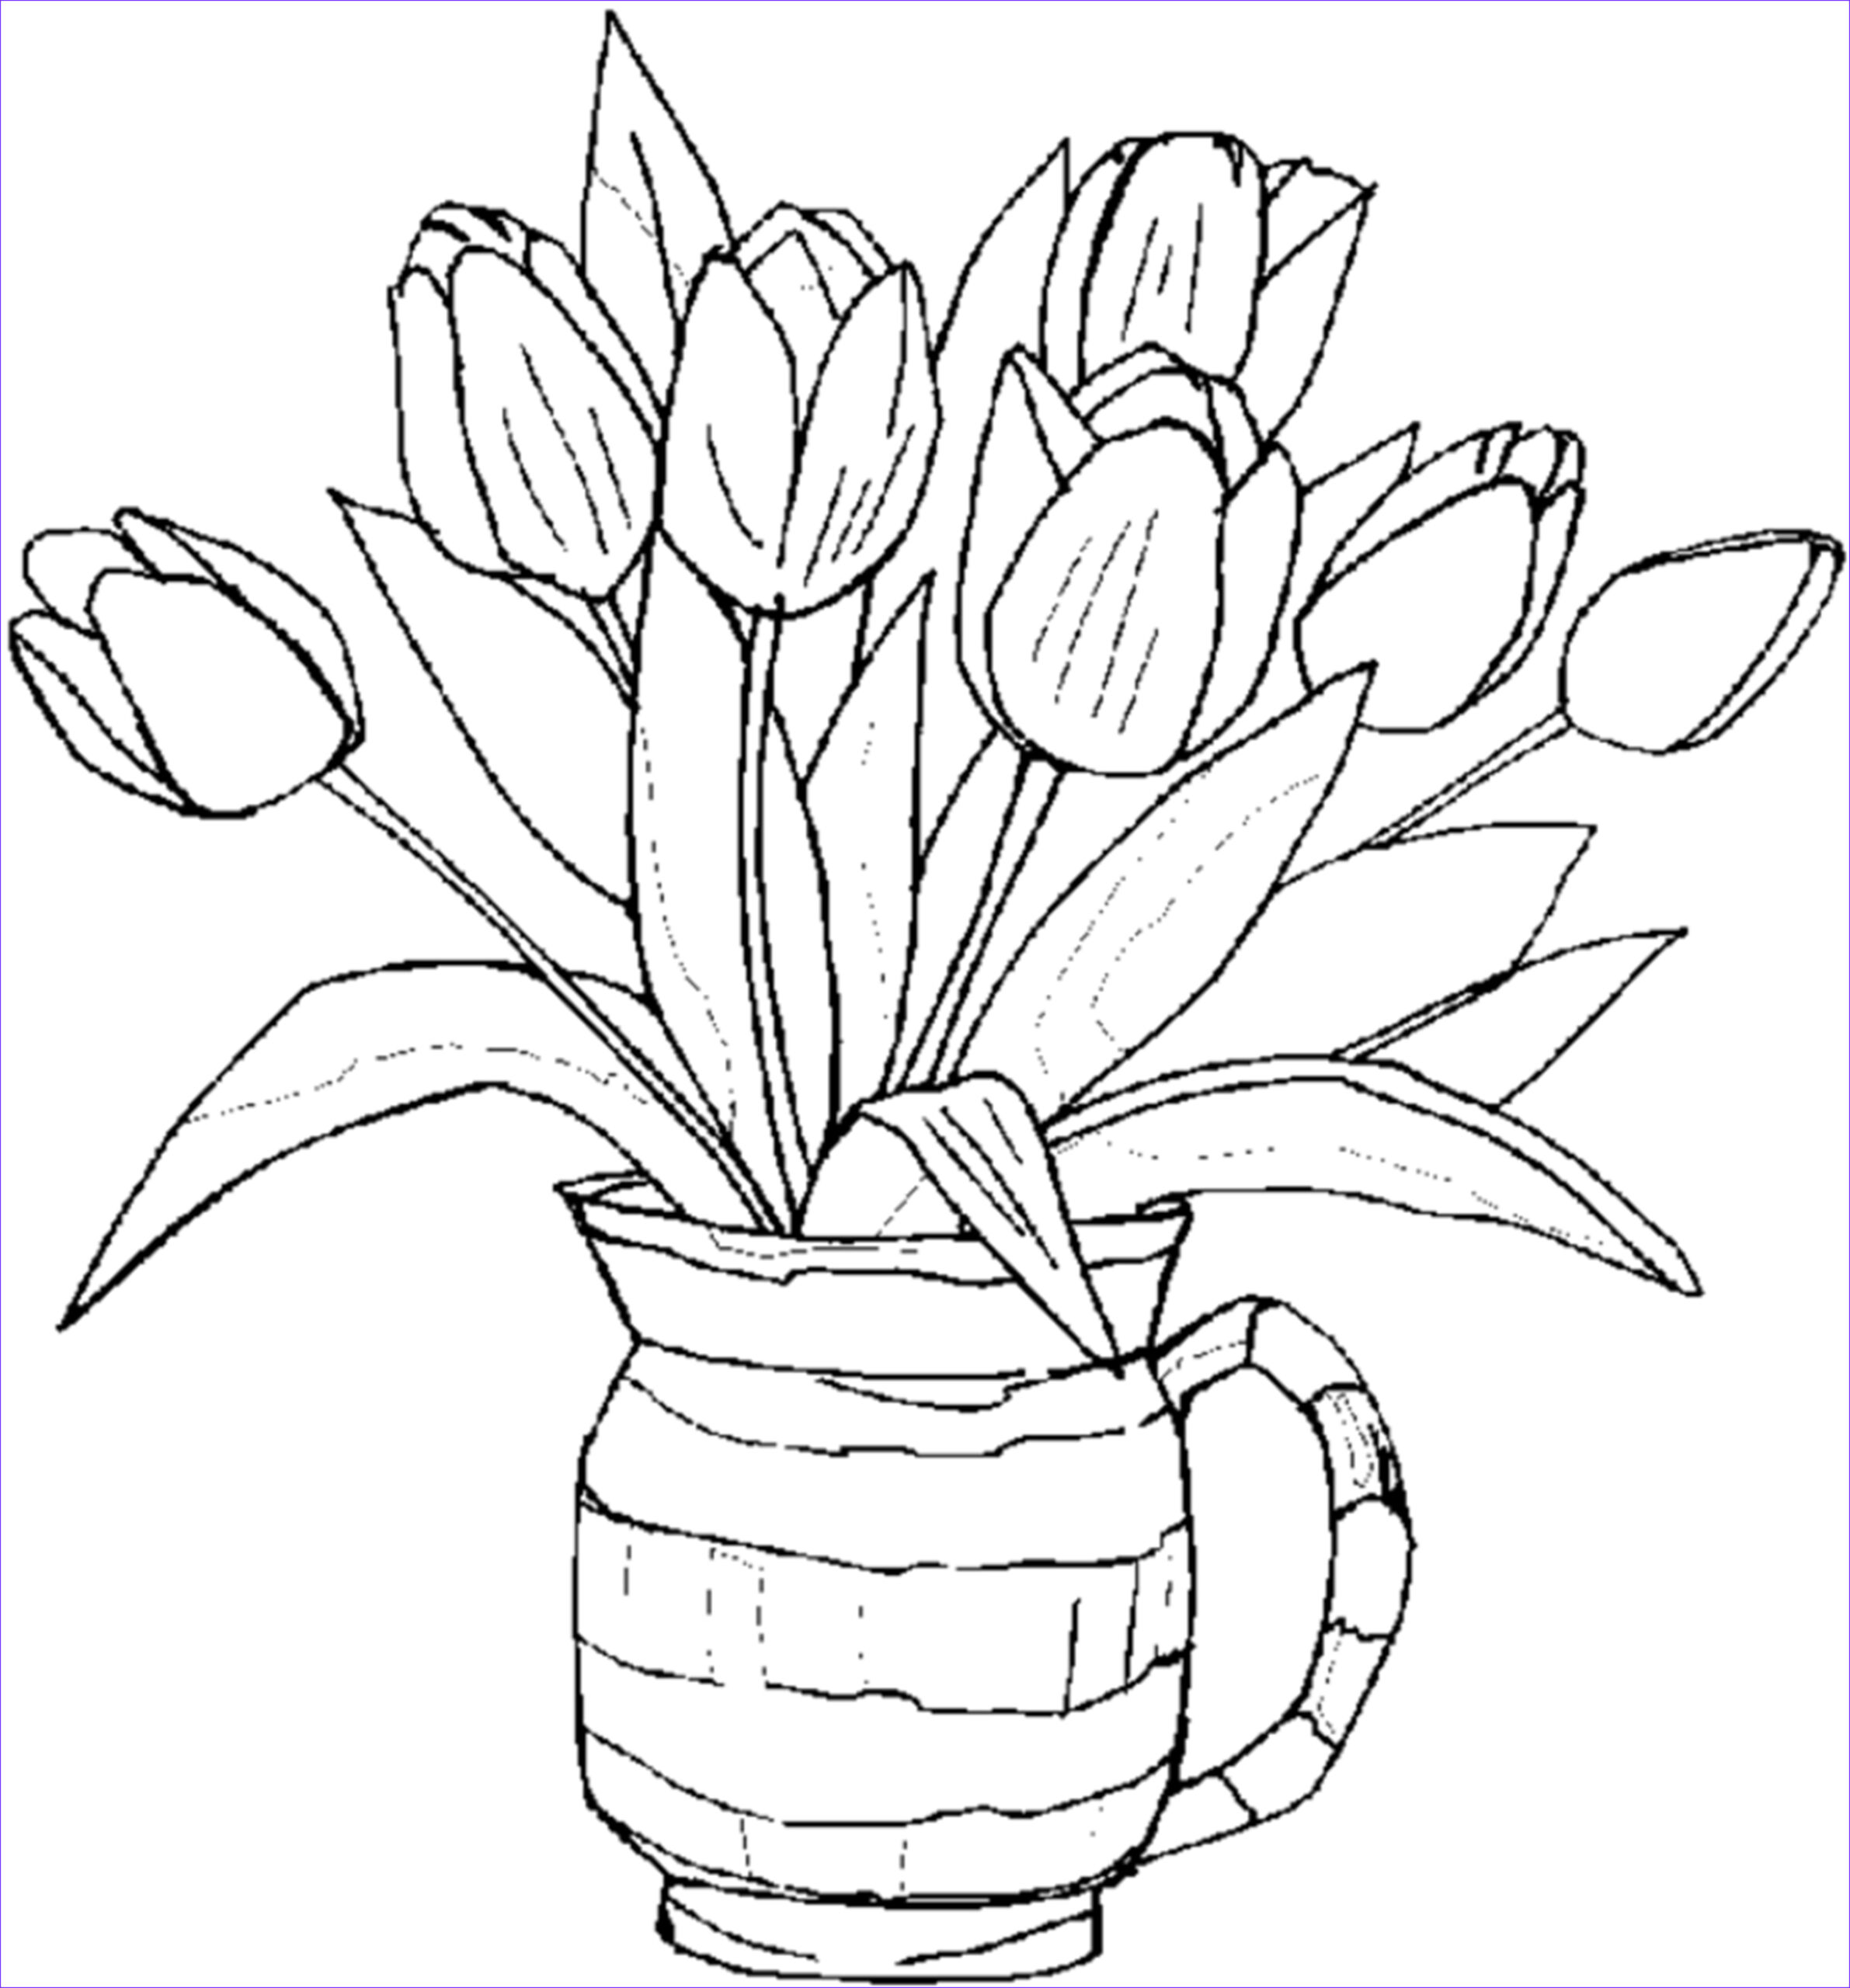 Coloring Page Of A Flower Elegant Photos Free Printable Flower Coloring Pages for Kids Best